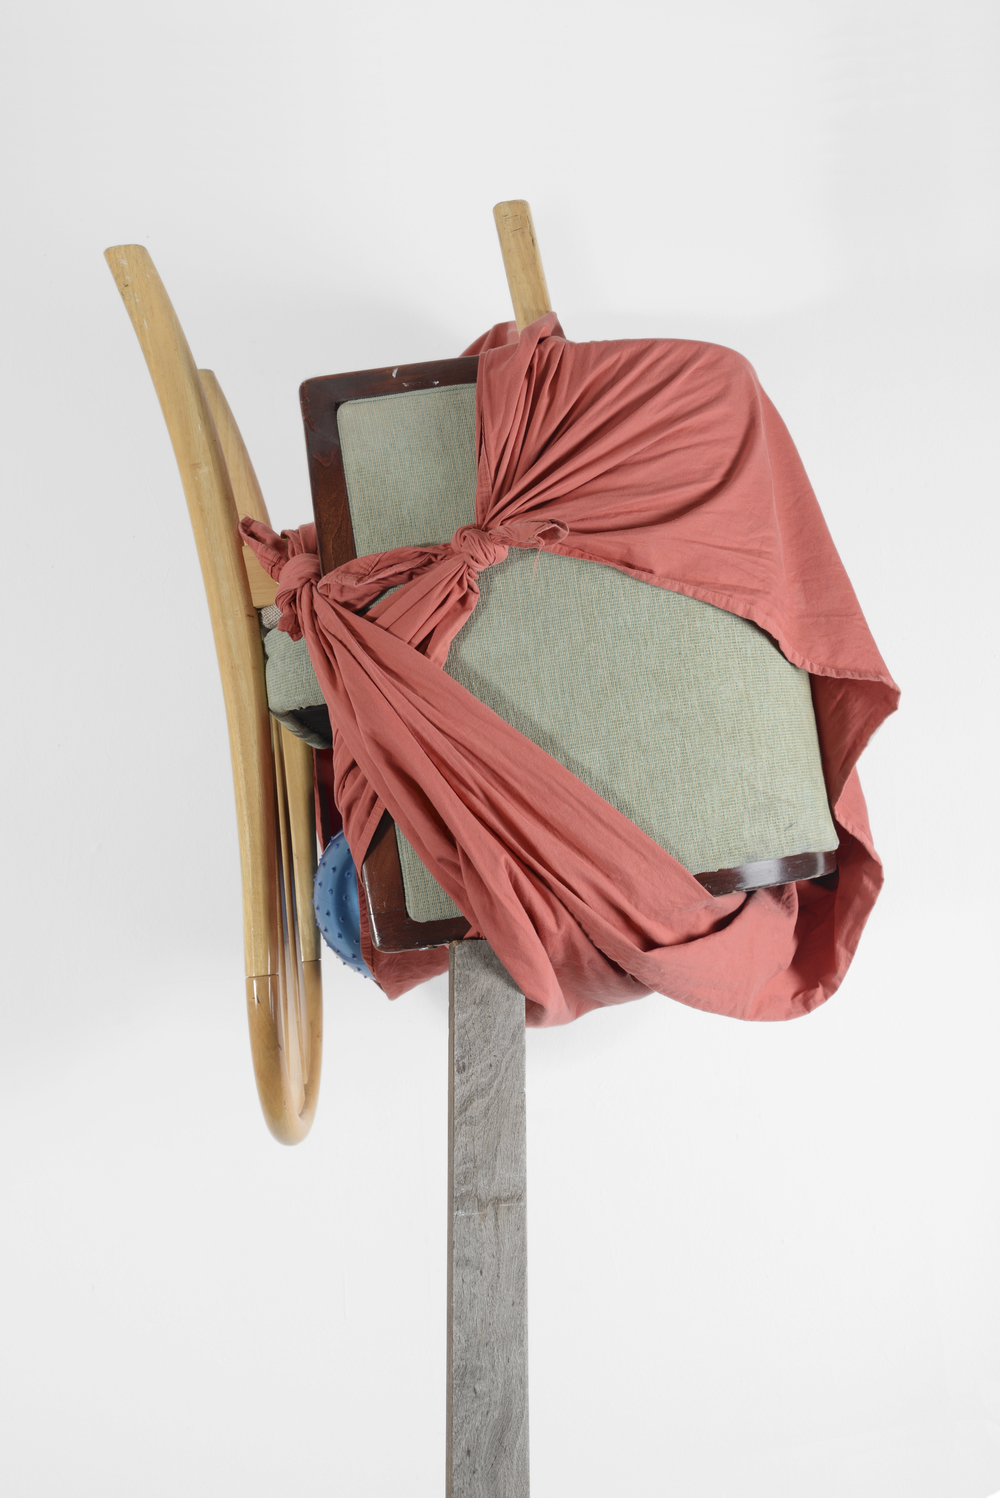 This May Fall (red bindle)- detail